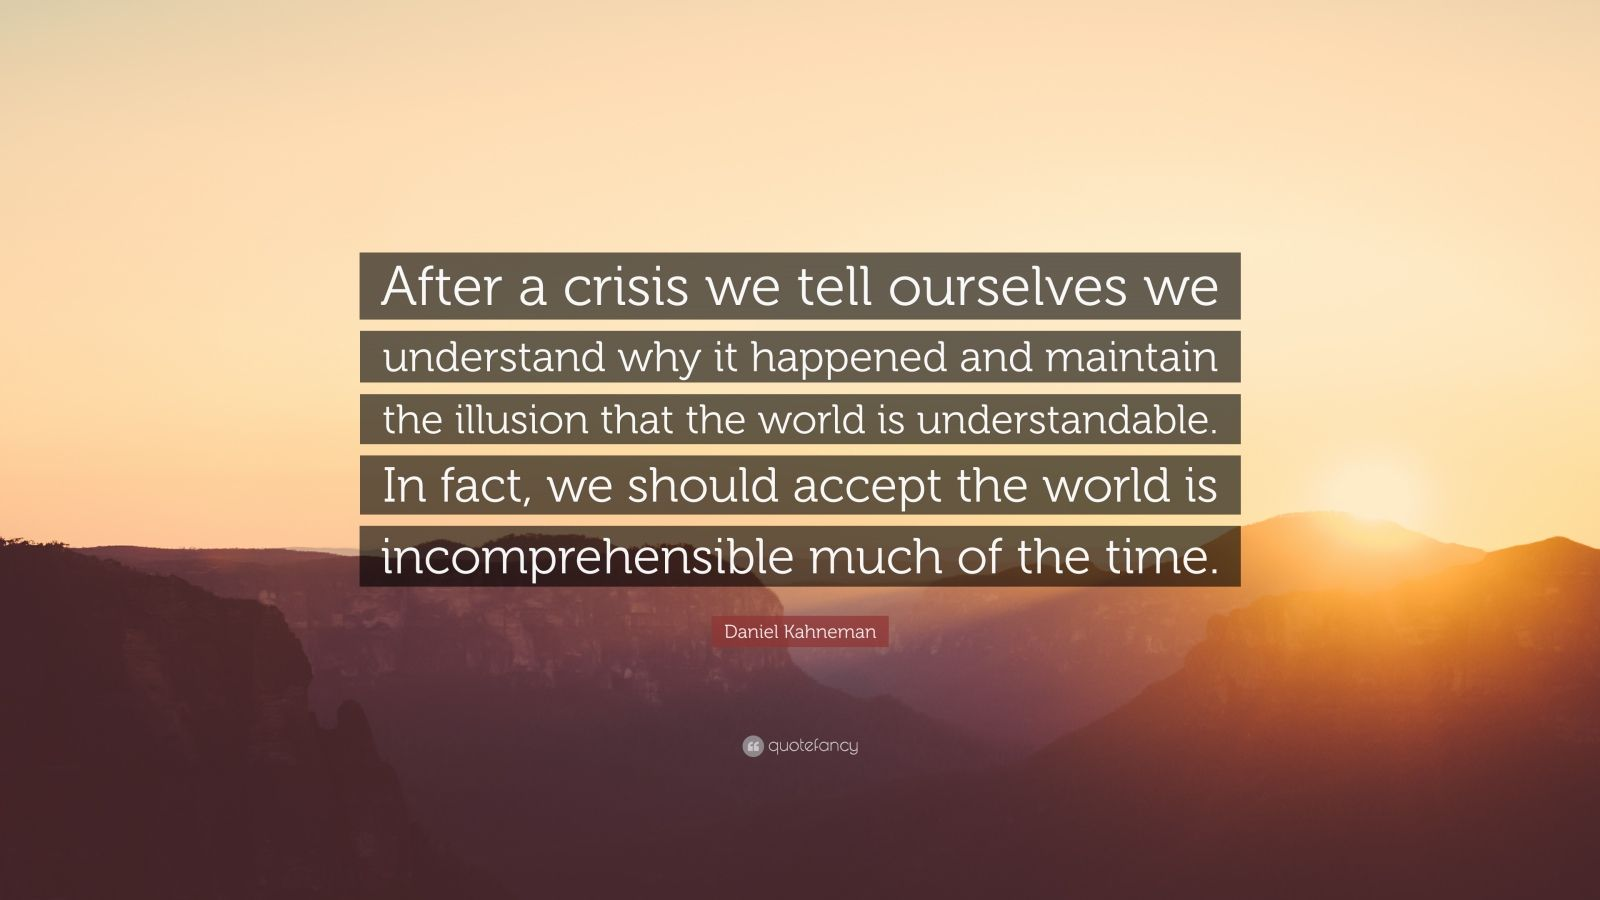 """Daniel Kahneman Quote: """"After a crisis we tell ourselves we understand why it happened and maintain the illusion that the world is understandable. In fact, we should accept the world is incomprehensible much of the time."""""""